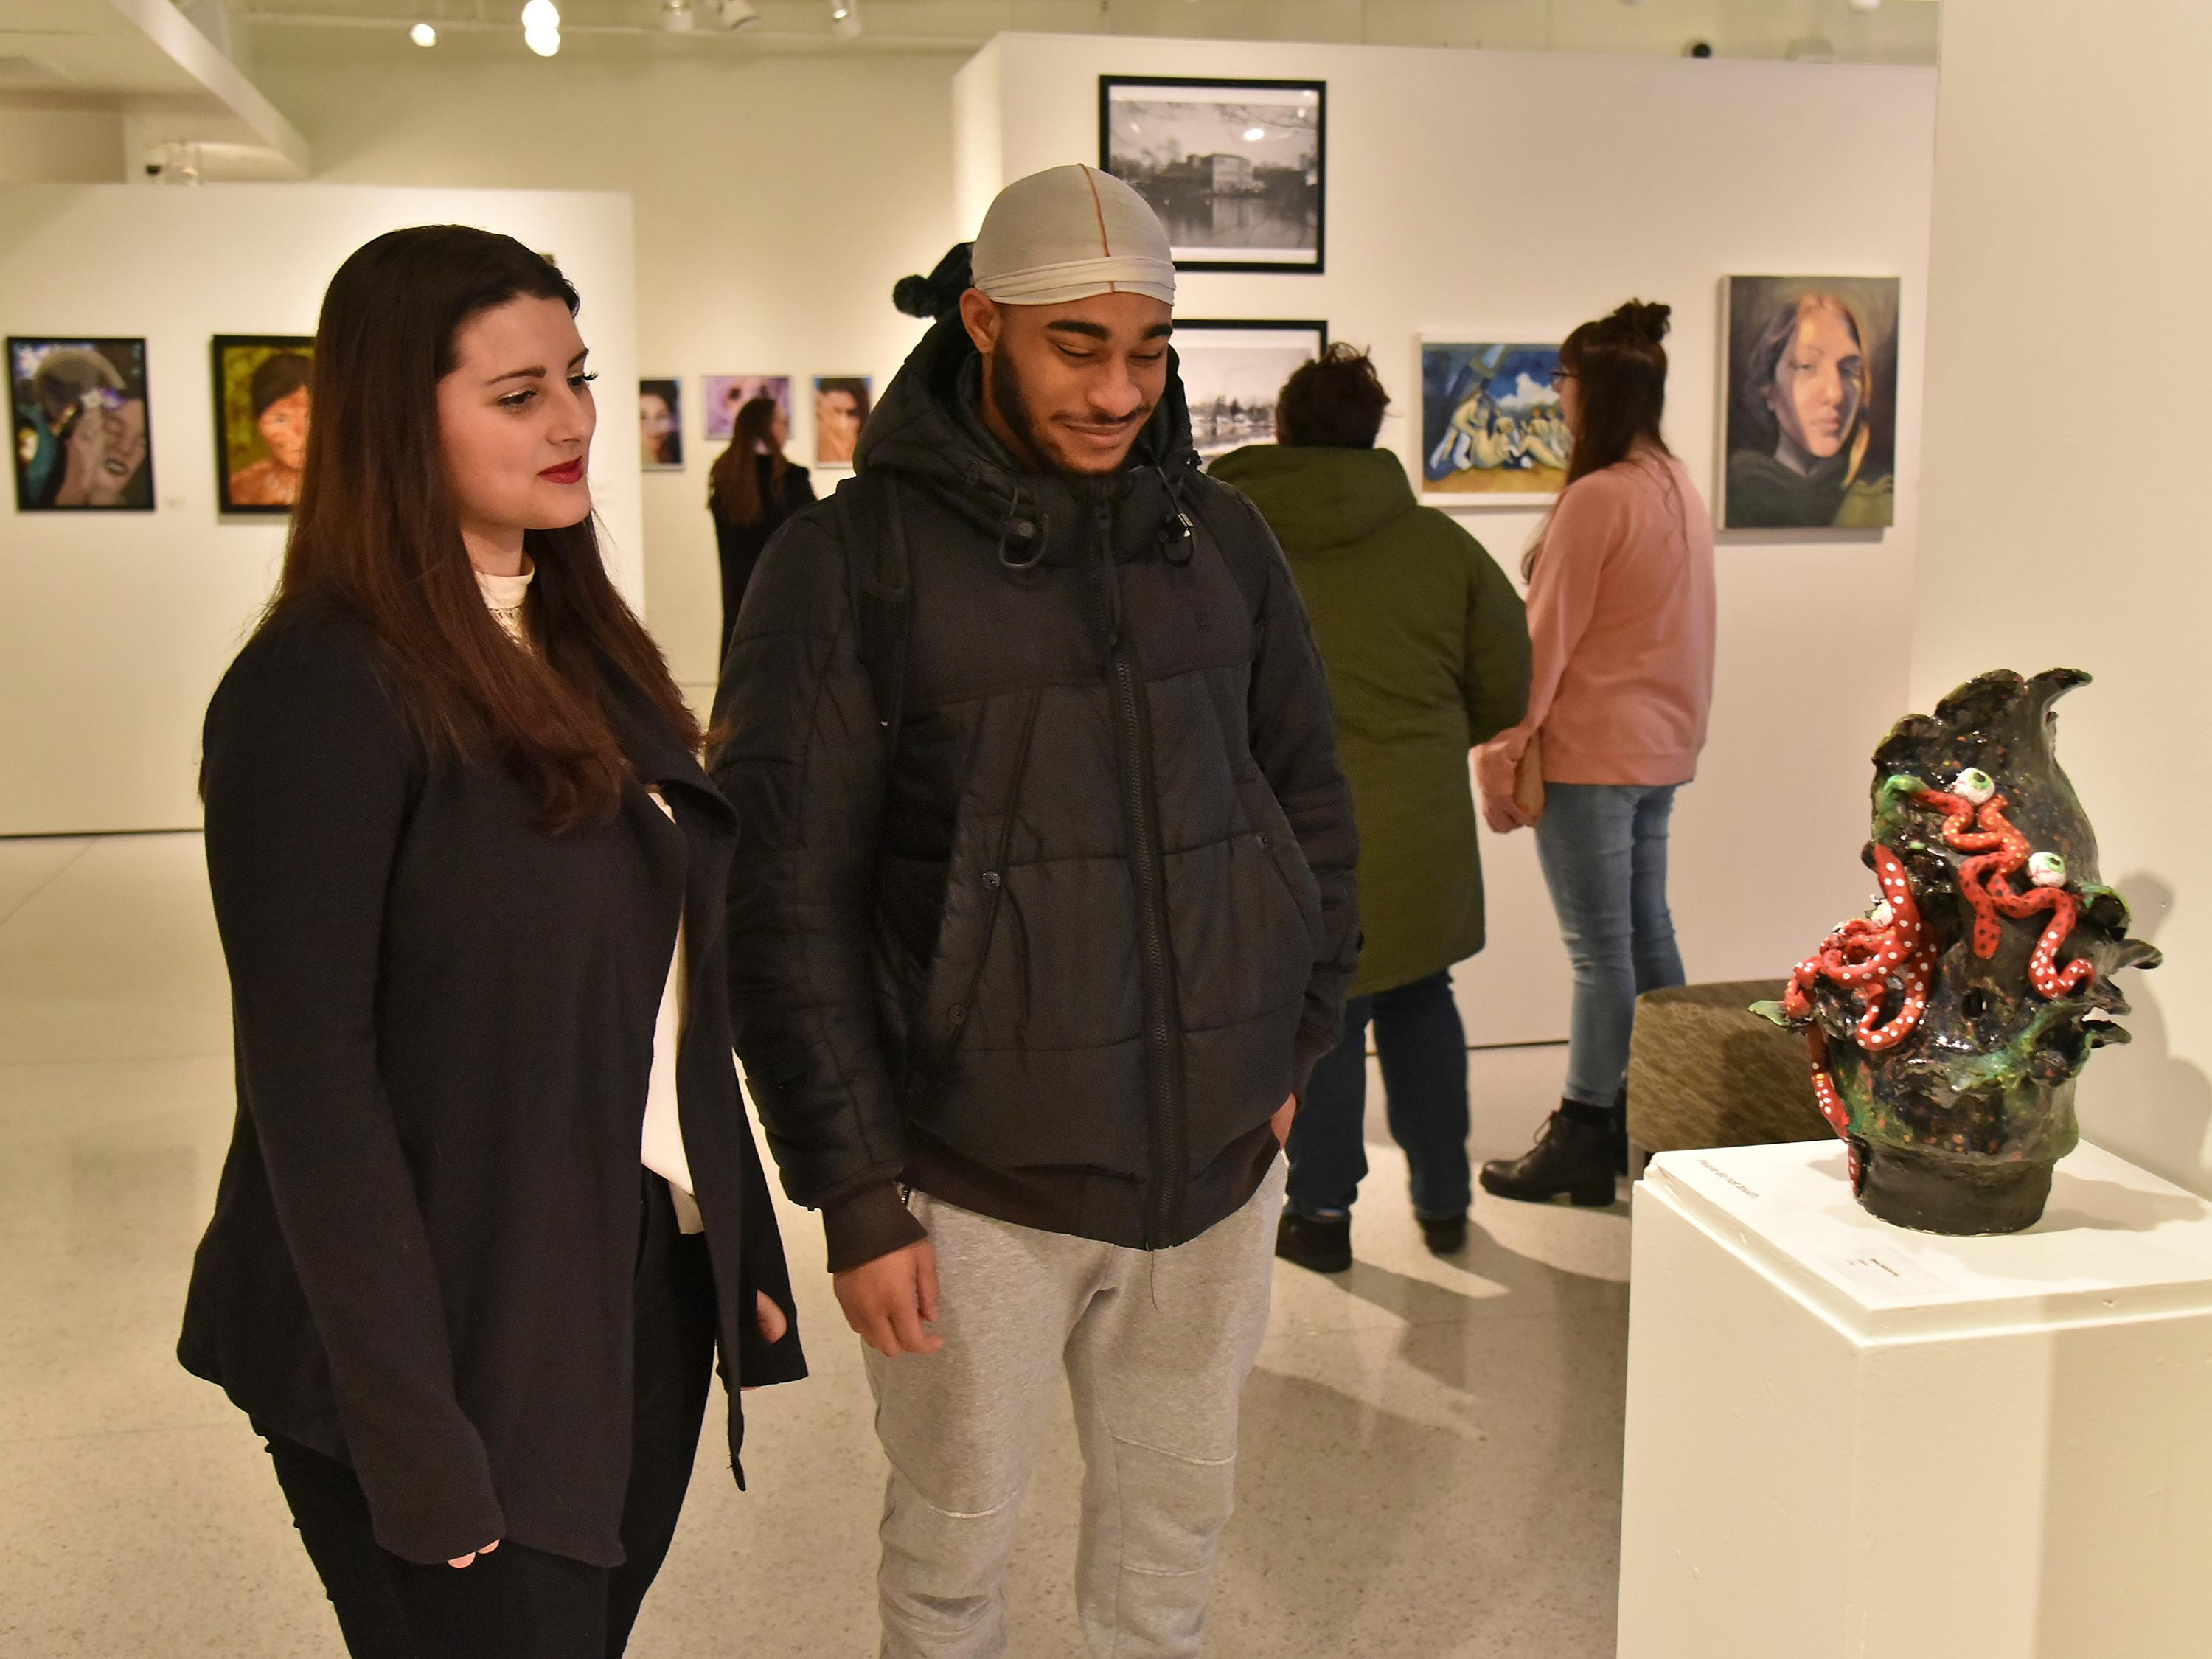 Shea McCarthy looks at her sculpture during Juried Student Exhibition